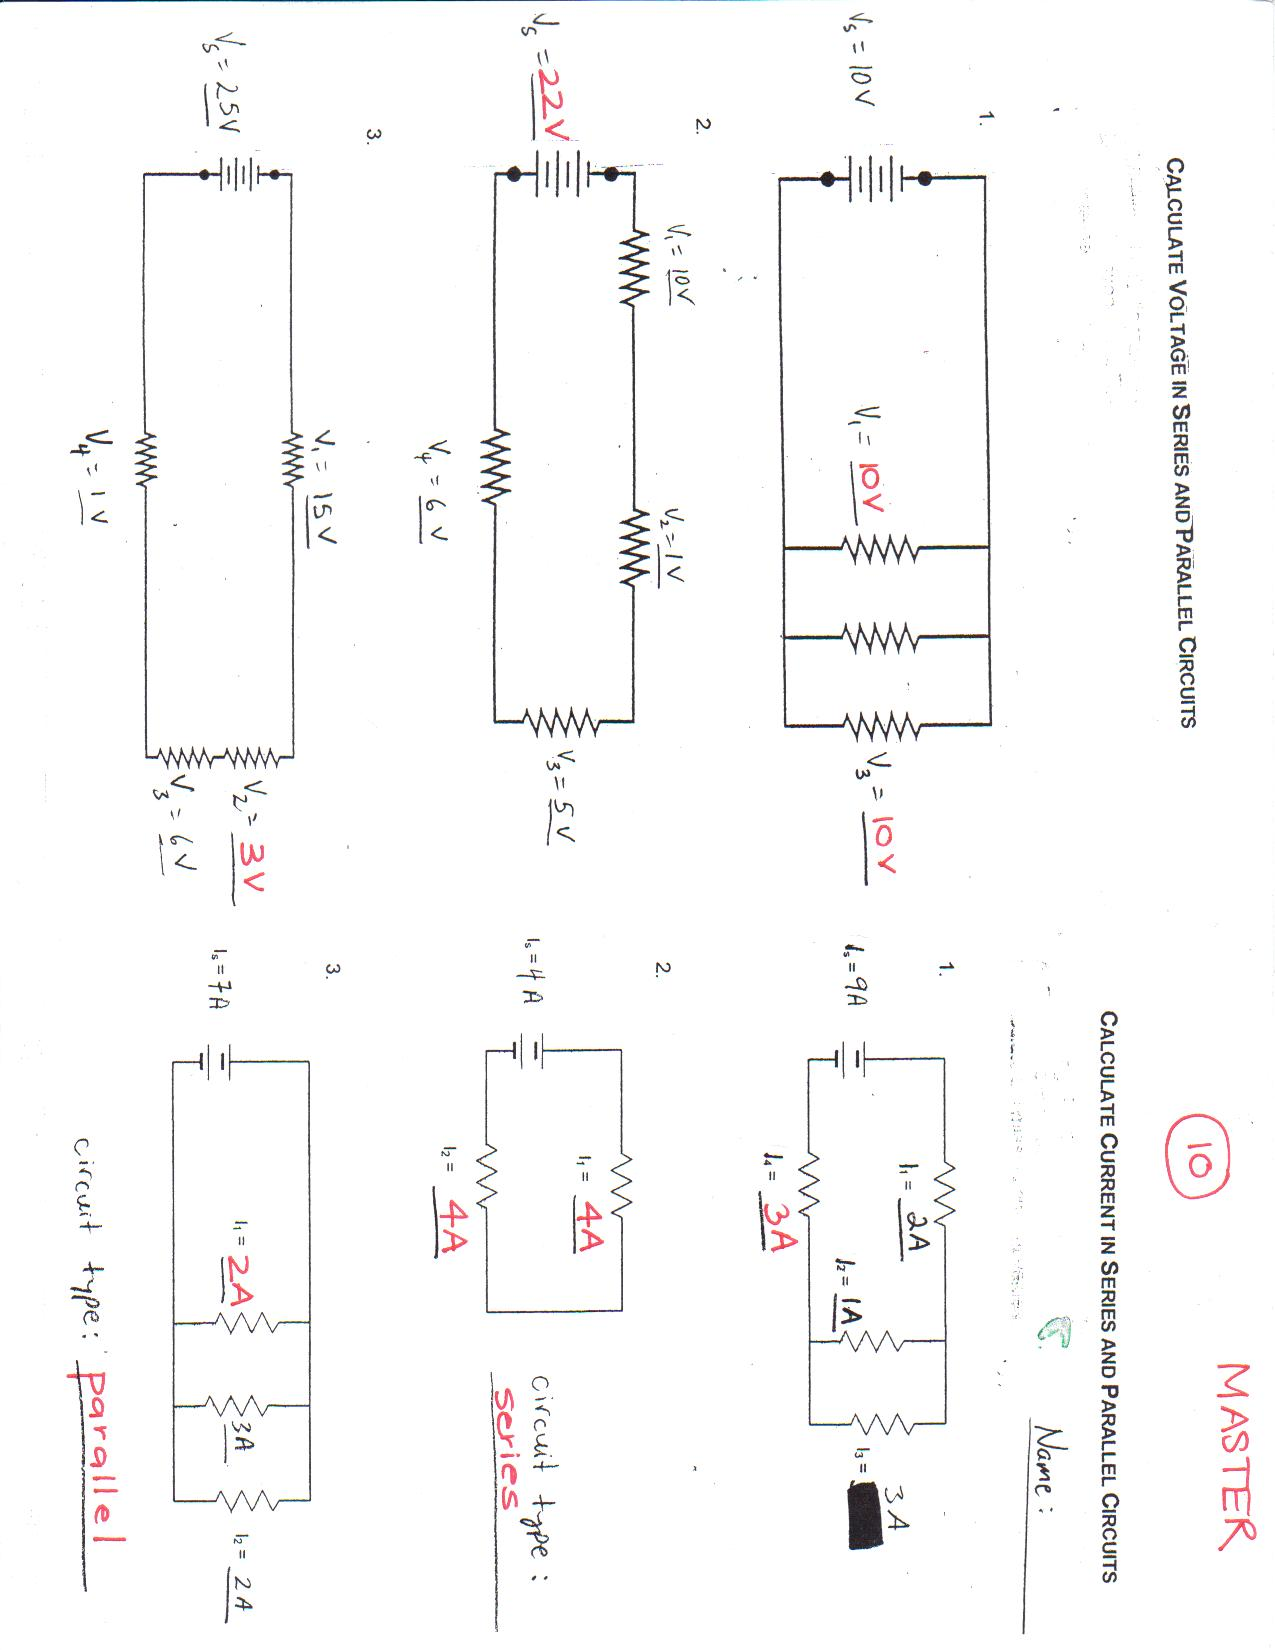 Schematic Symbols Chart Answers Pltw